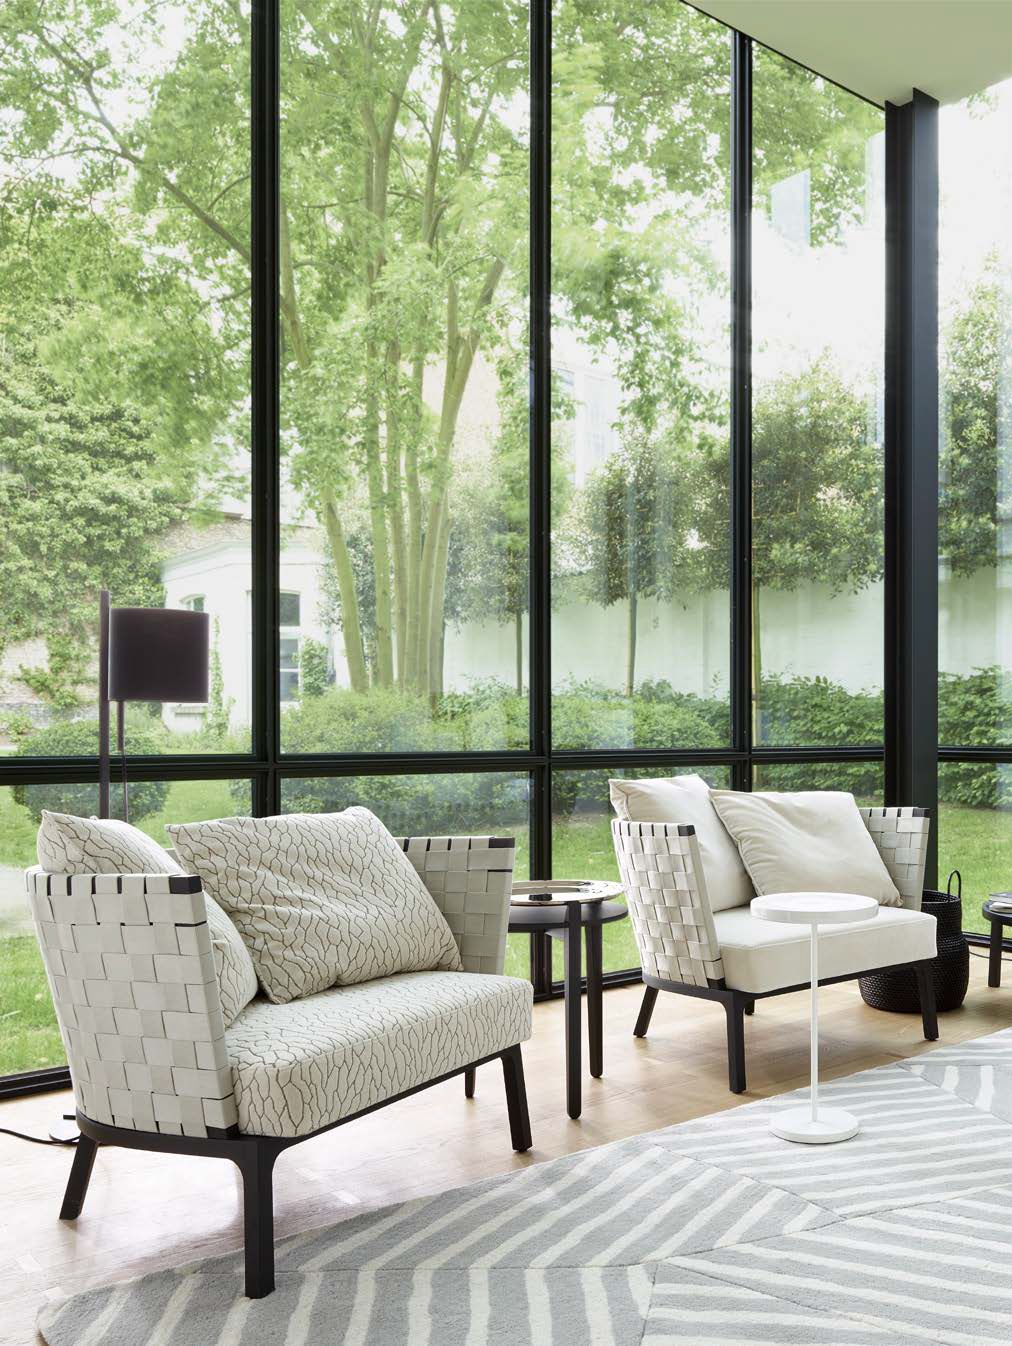 Mon repos armchair designed by peter maly for ligne roset available at linea inc modern furniture los angeles infolinea inc com modernfurniture